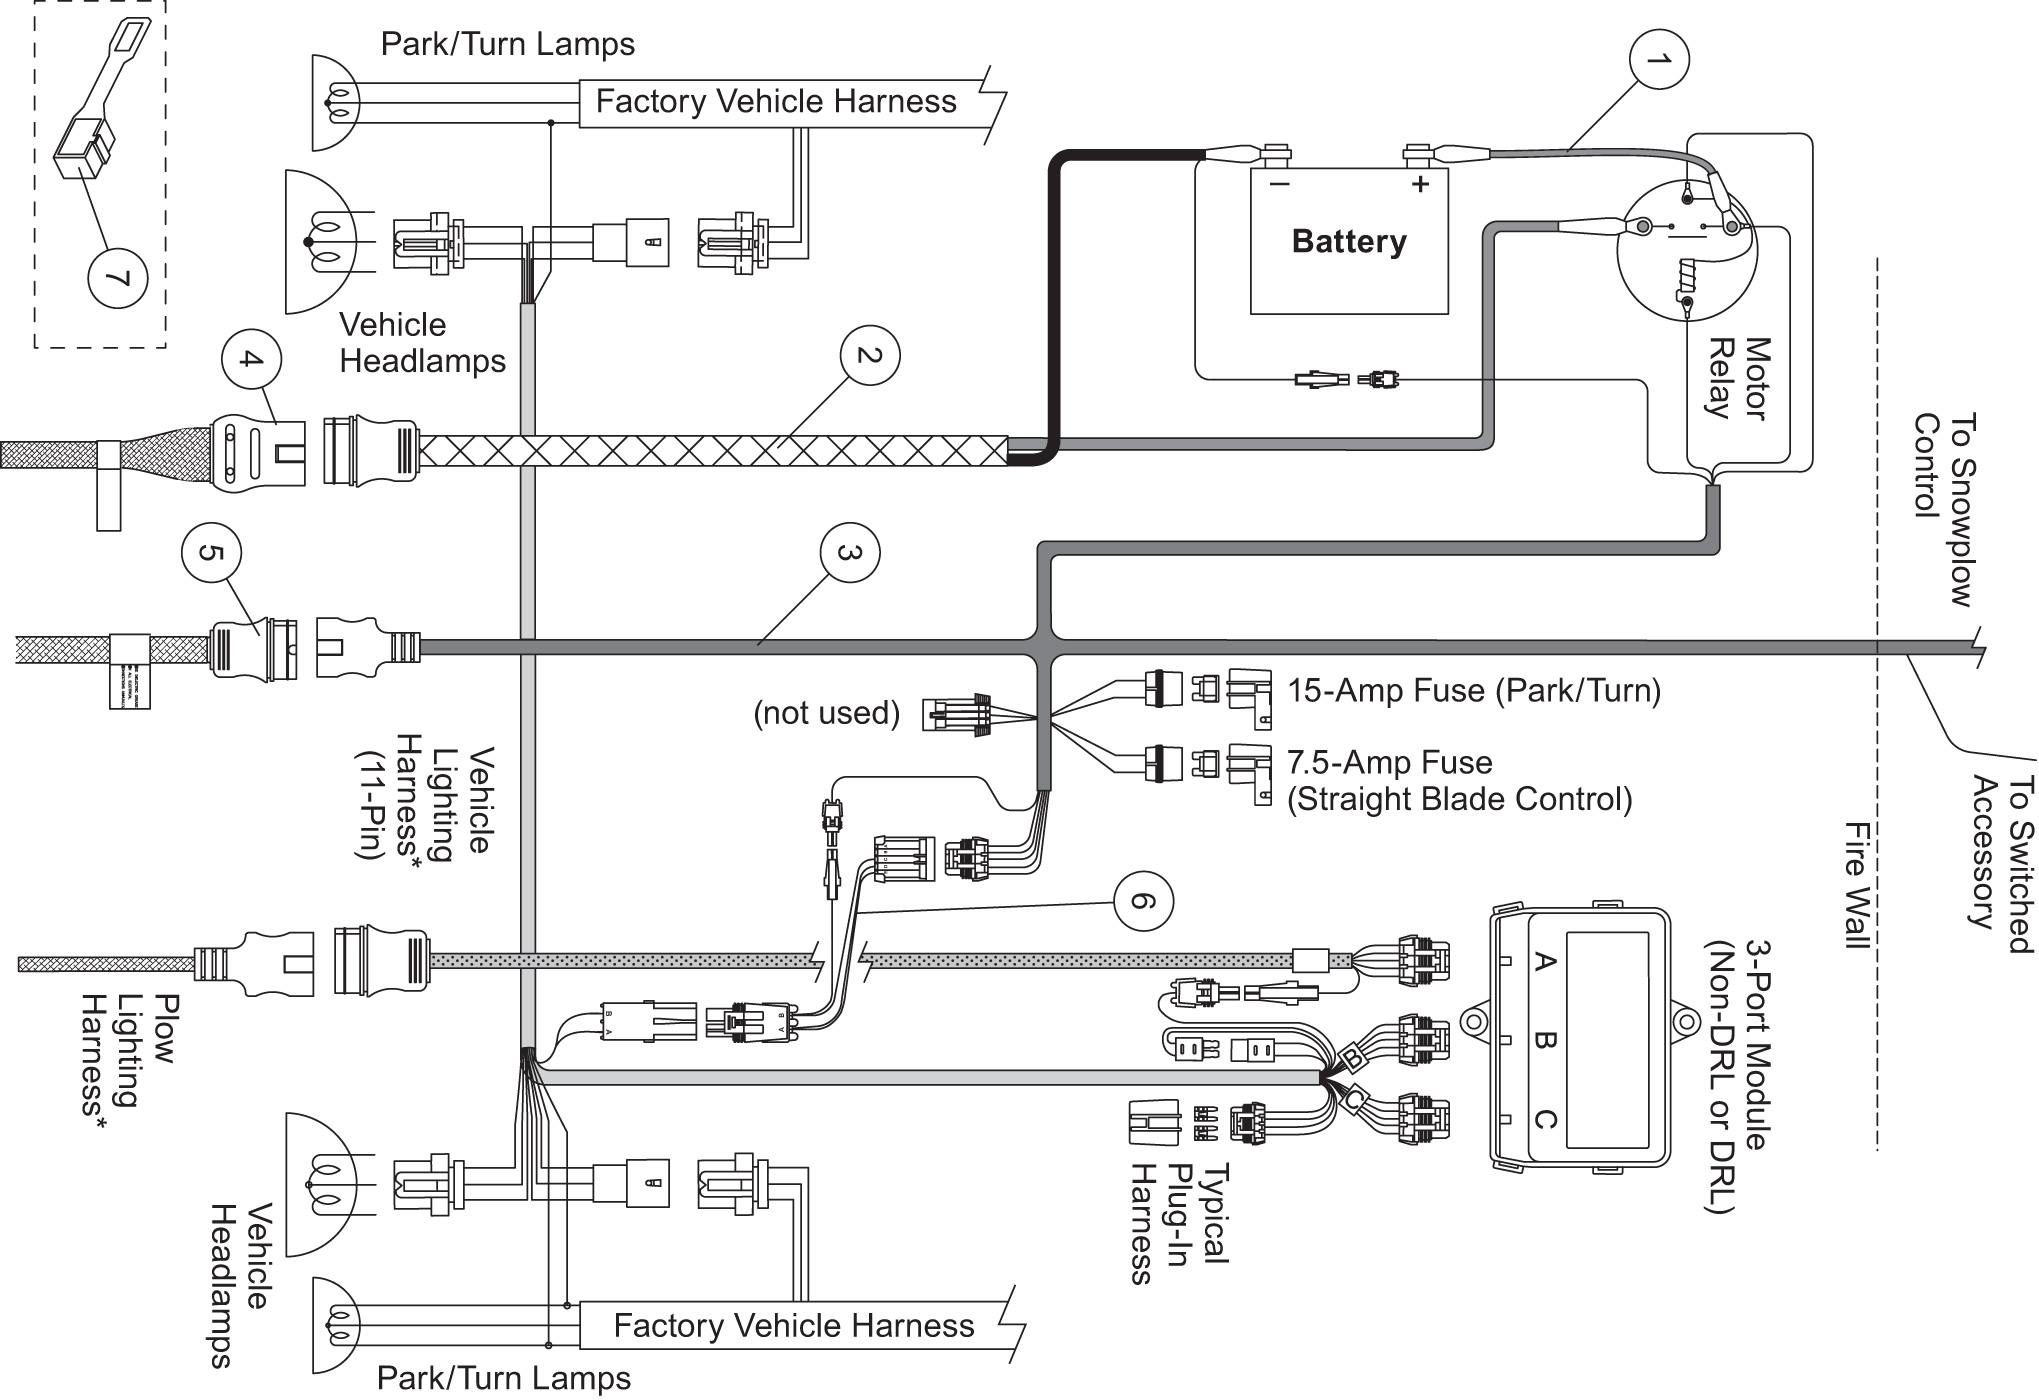 4F8010 Western Salt Spreader Wiring Diagram | #Digital~Resources#Digital~Resources